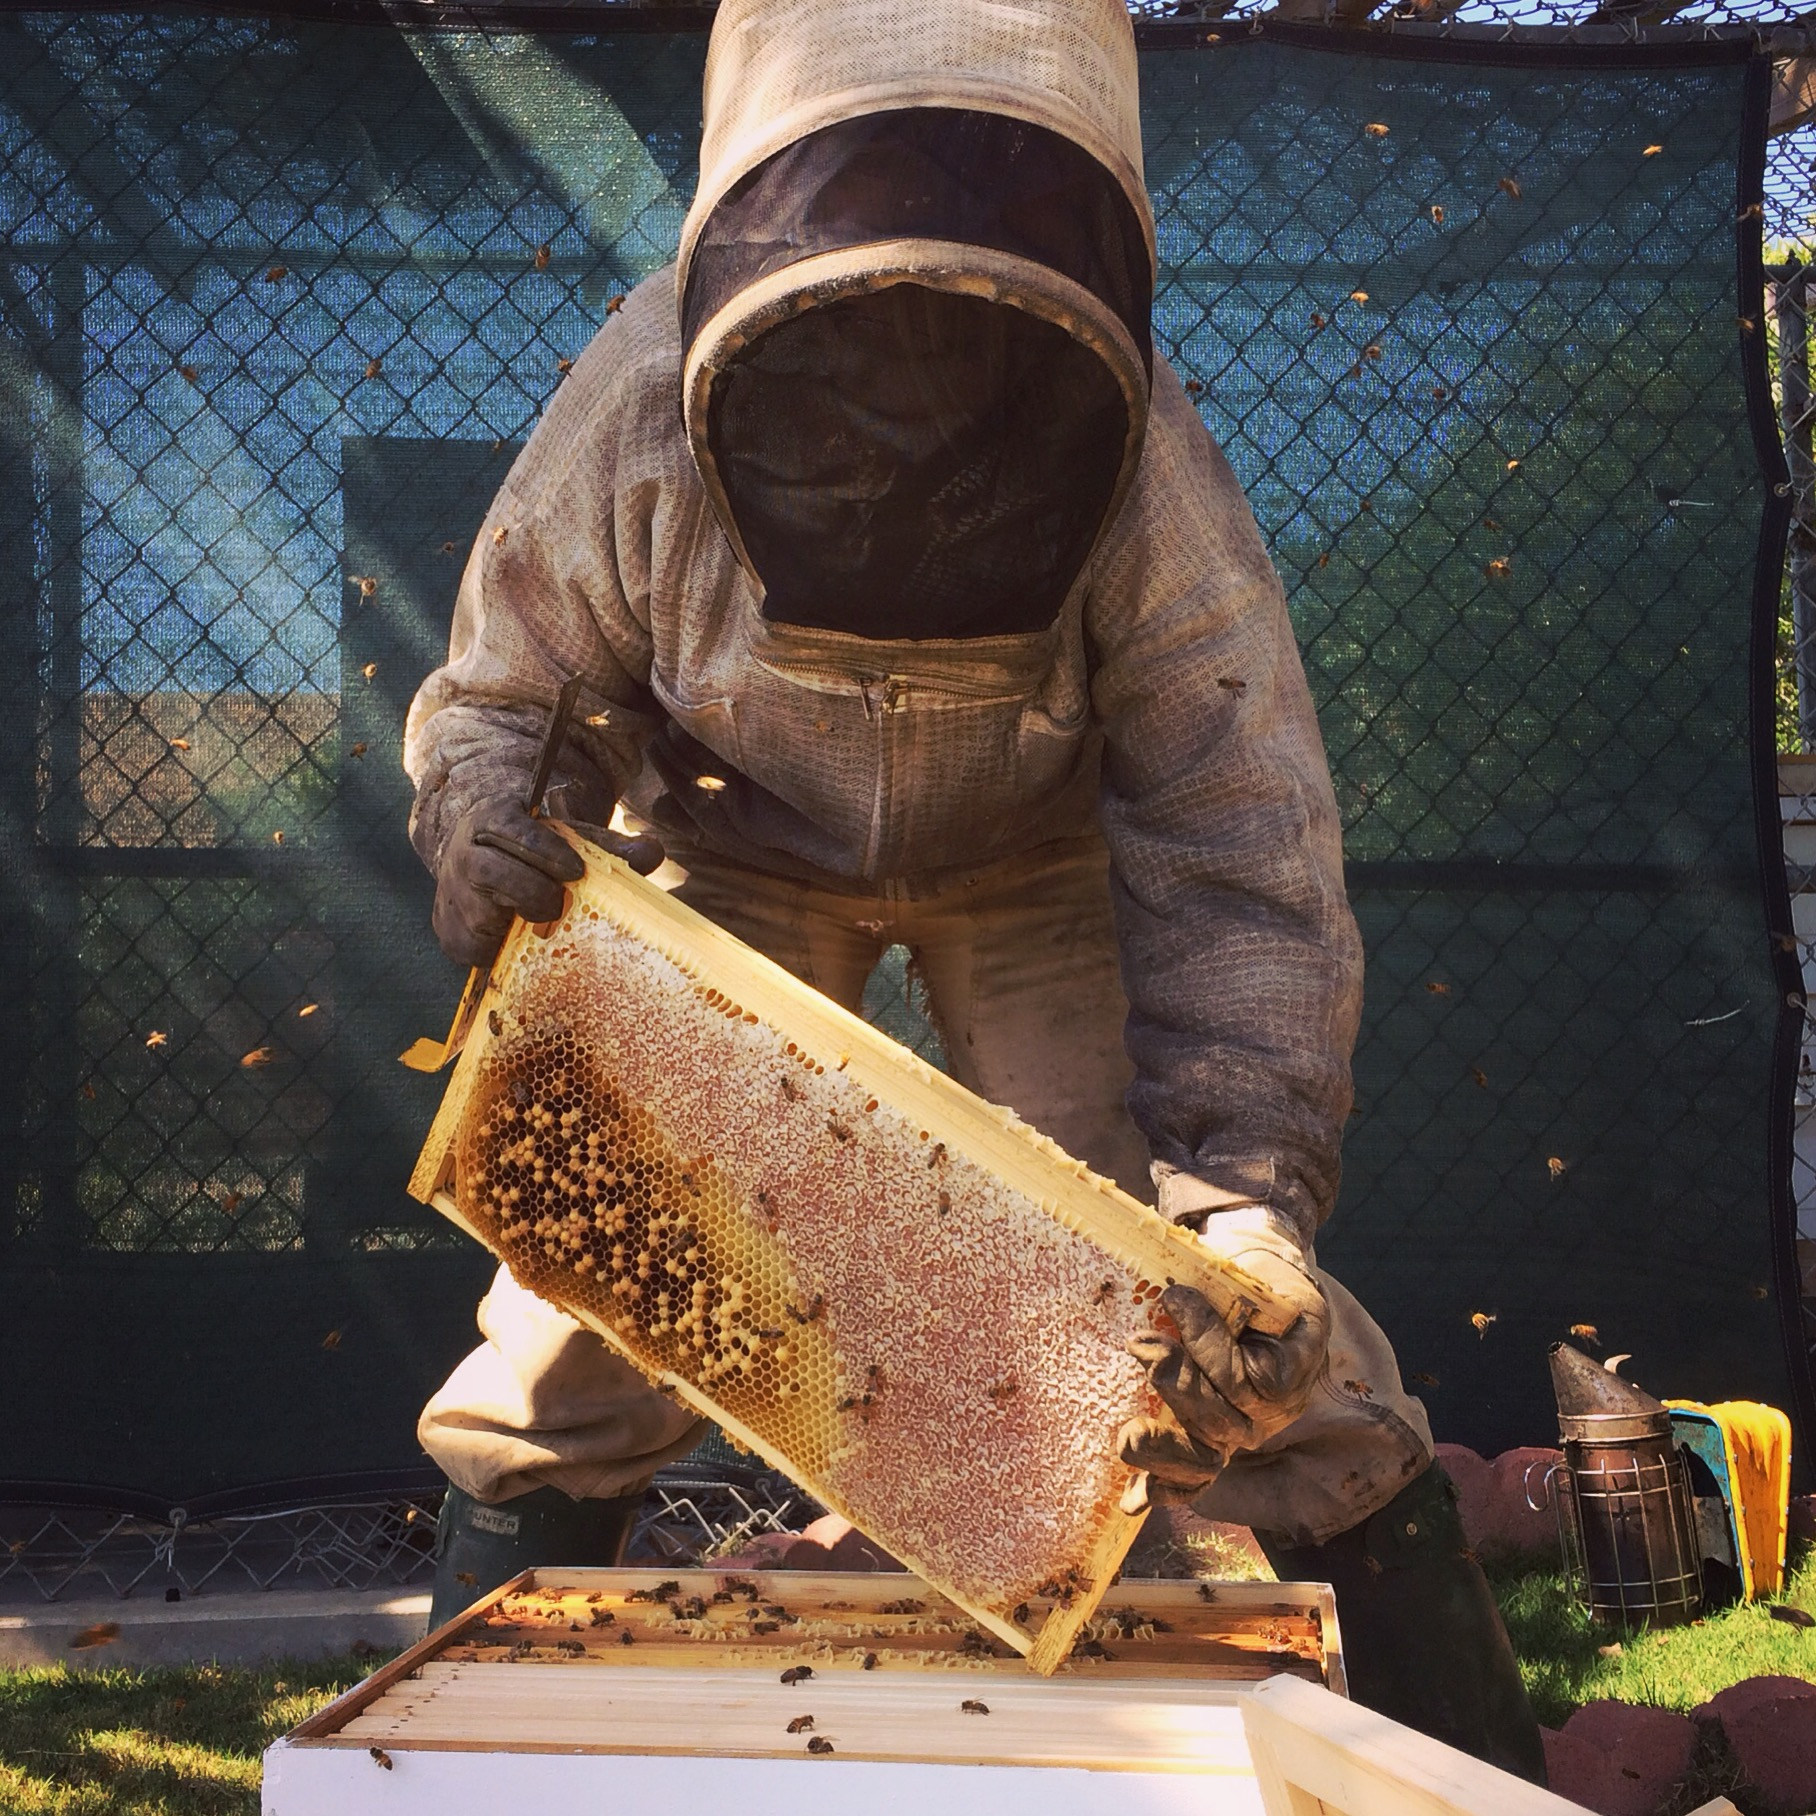 HOW TO WALK AWAY FROM A MOODY HIVE Keeping Backyard Bees